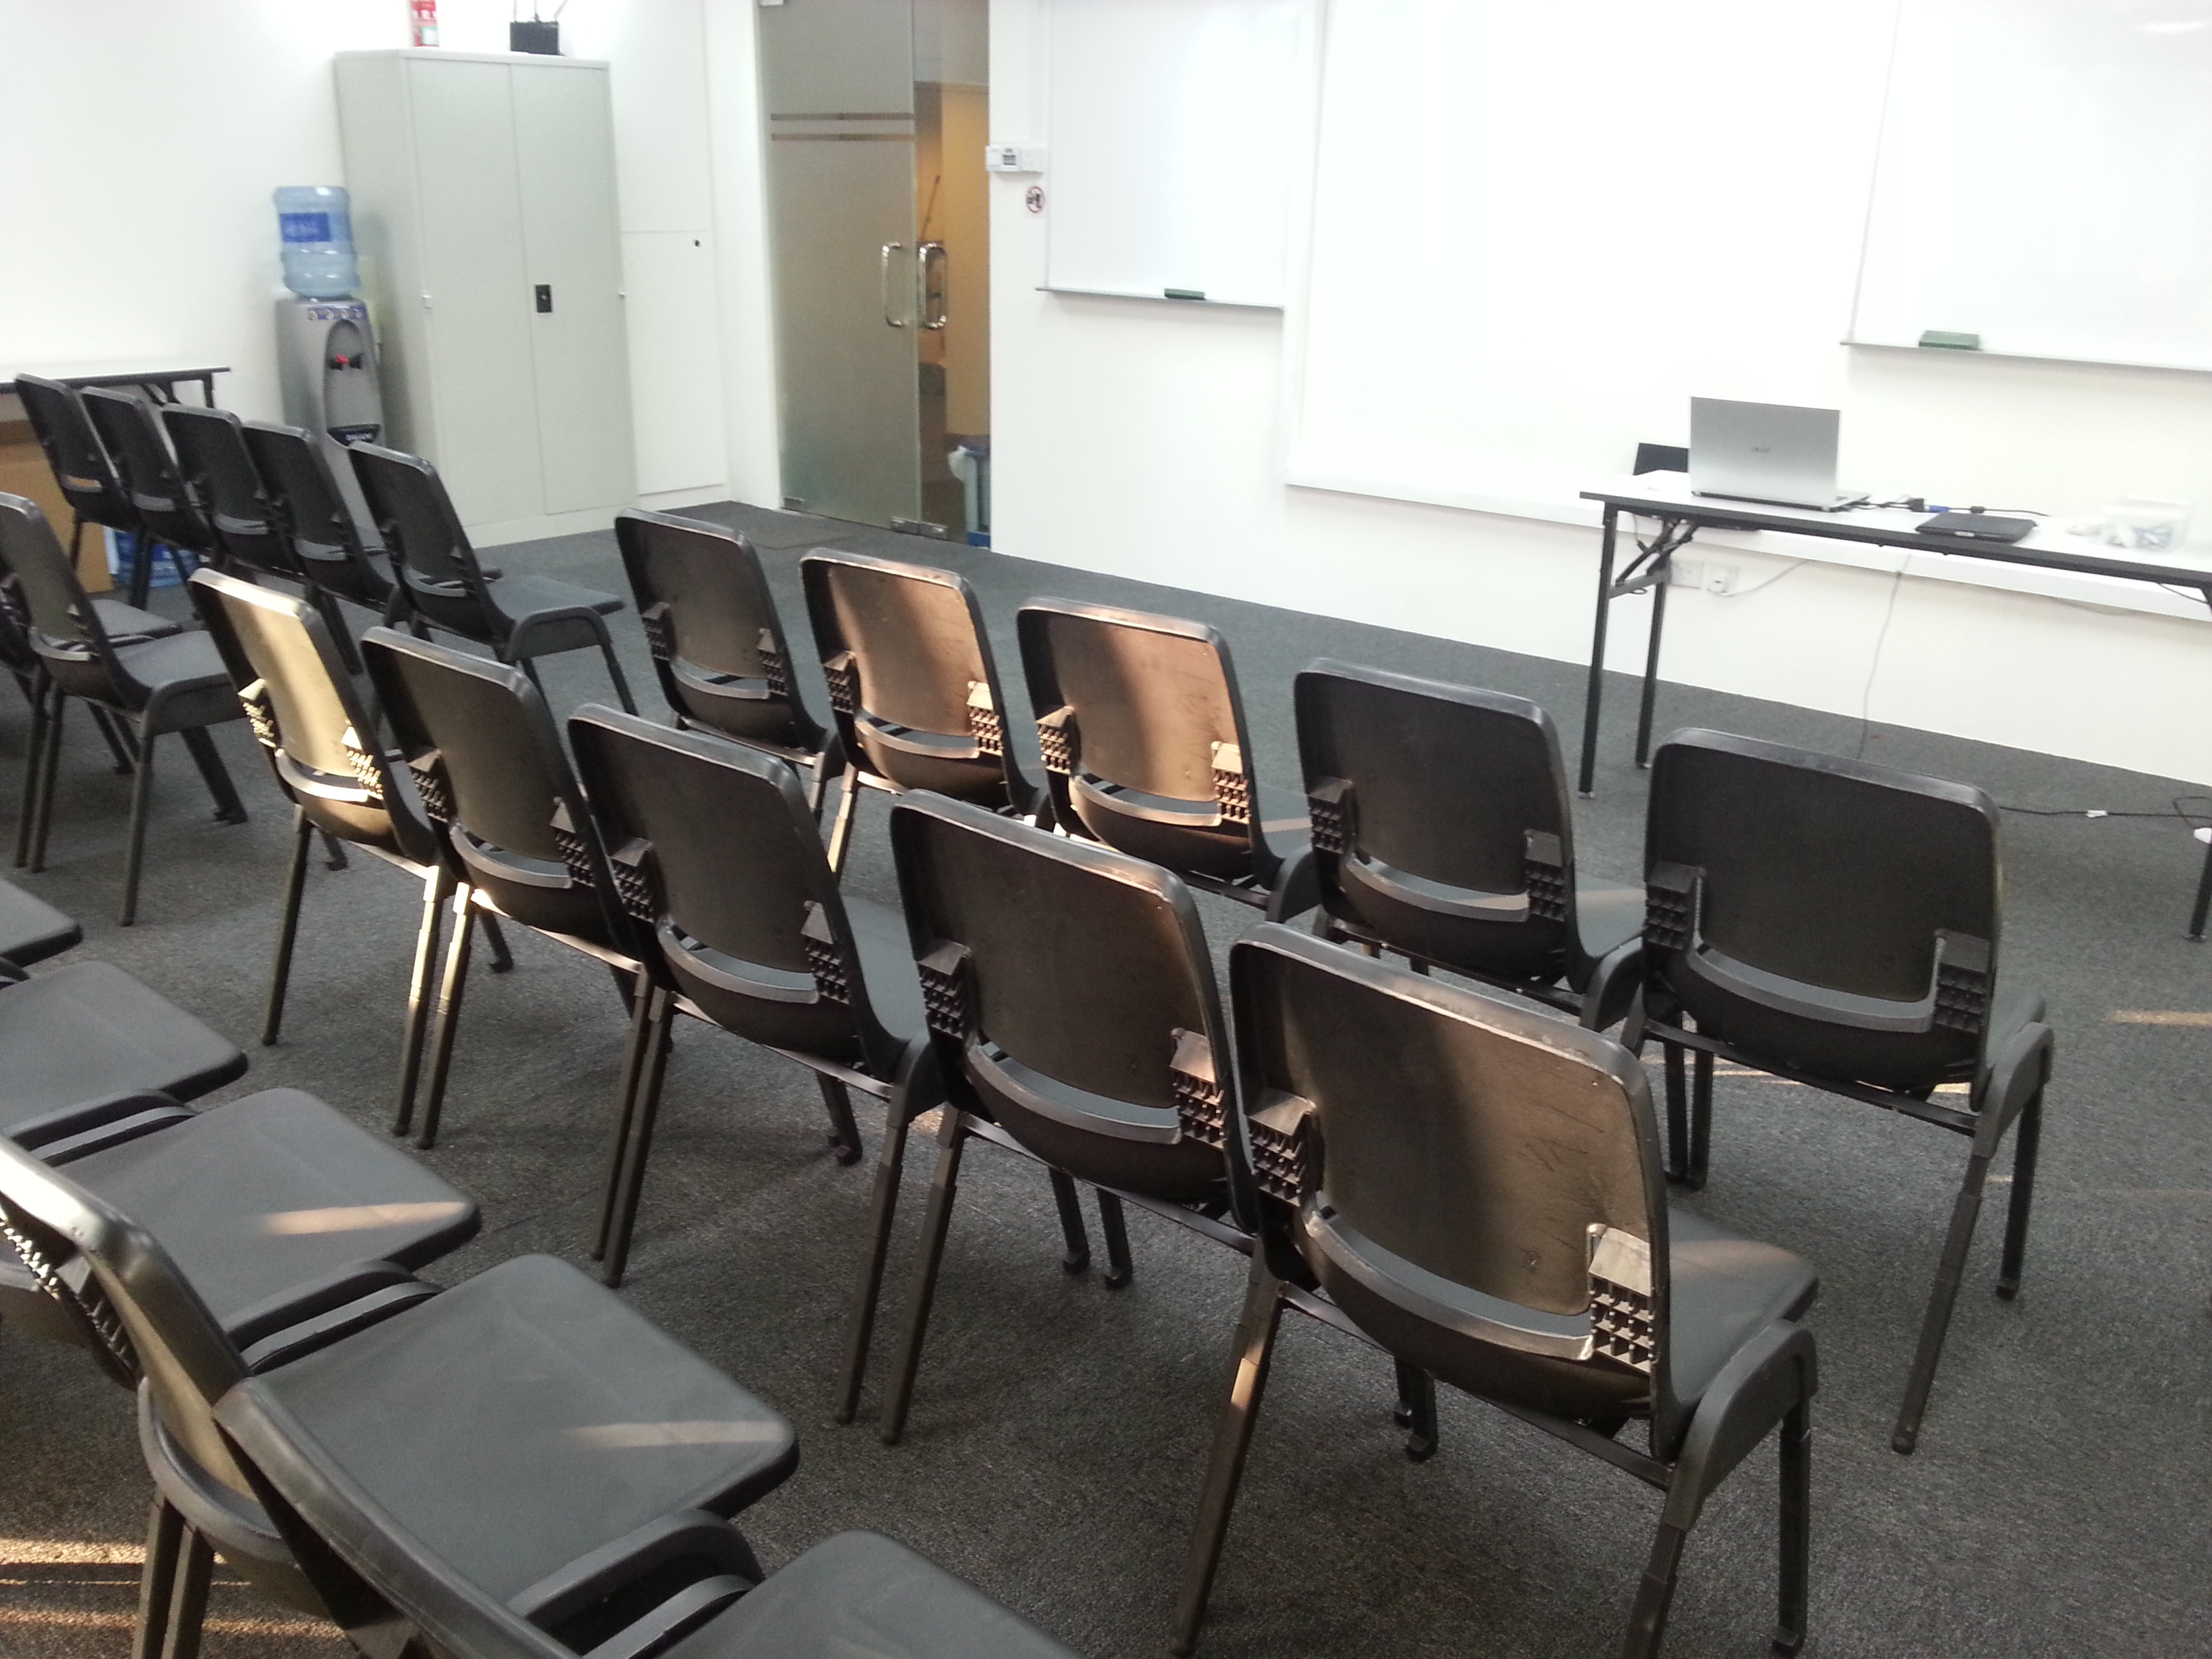 Seminar Room Rental Singapore Seating Arrangement Picture 5